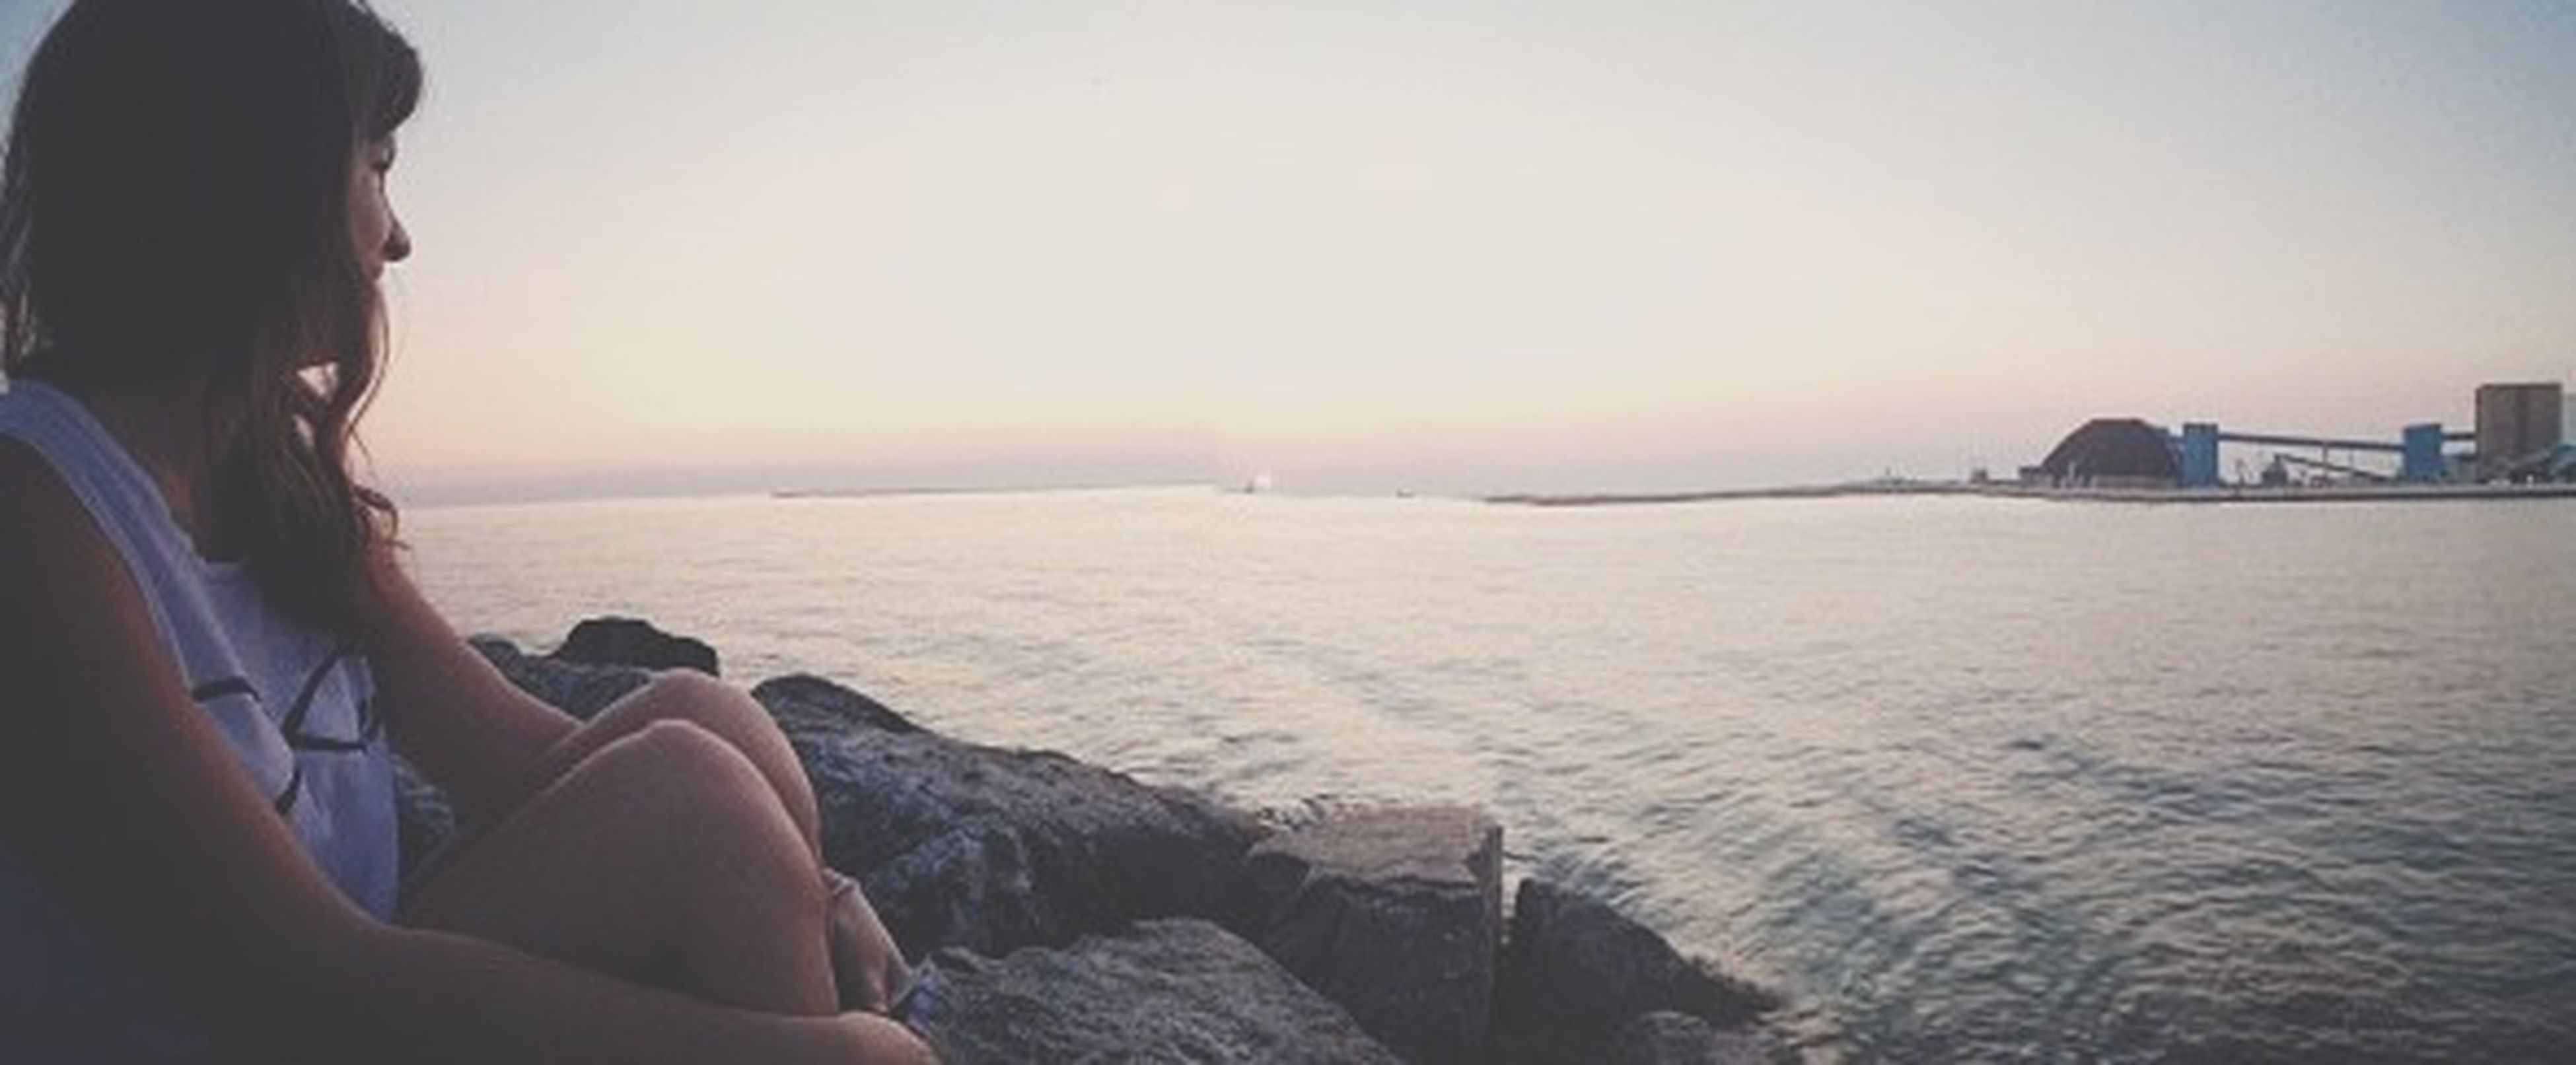 sea, lifestyles, leisure activity, horizon over water, water, beach, clear sky, sunset, sky, person, sitting, holding, vacations, shore, men, scenics, copy space